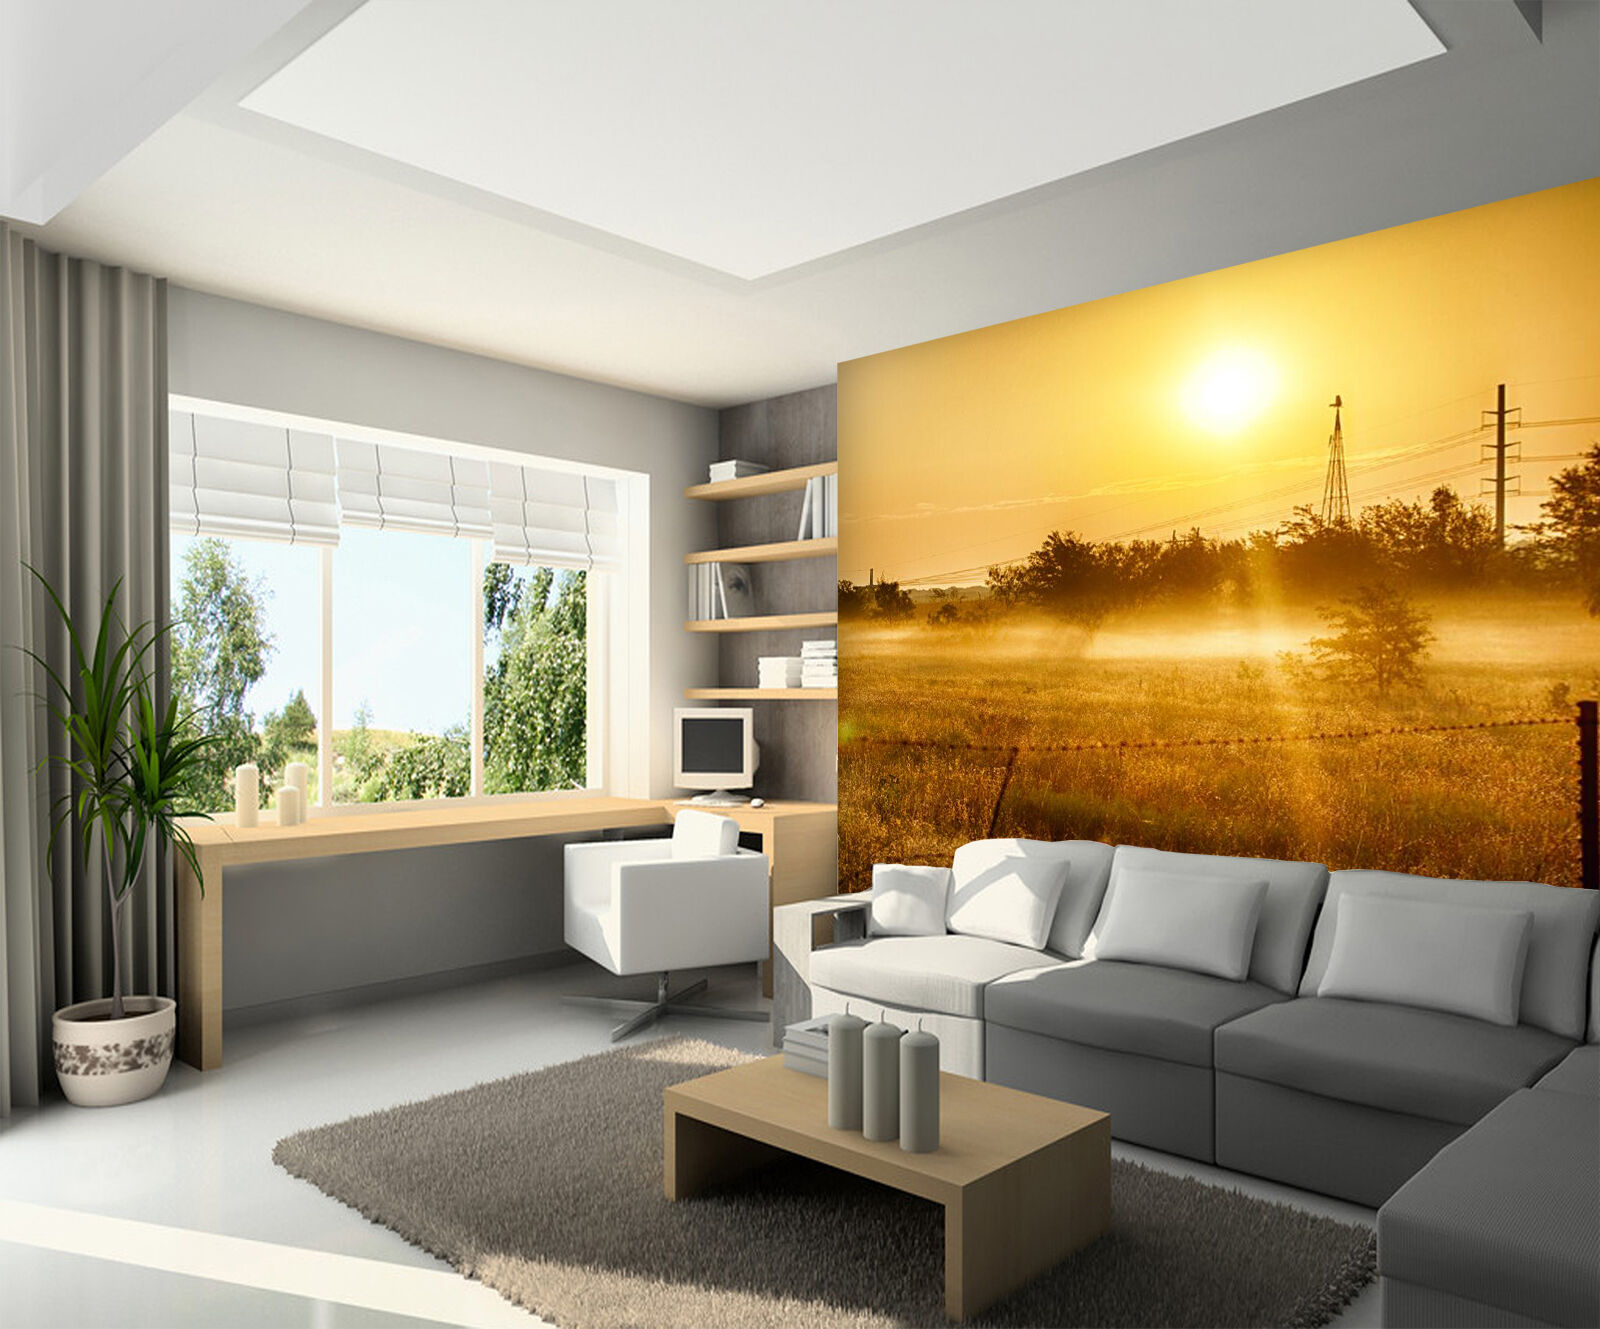 3D Sunny grassland 231 Wall Paper Wall Print Decal Decal Decal Wall Deco Indoor Wall Murals c8a4cf